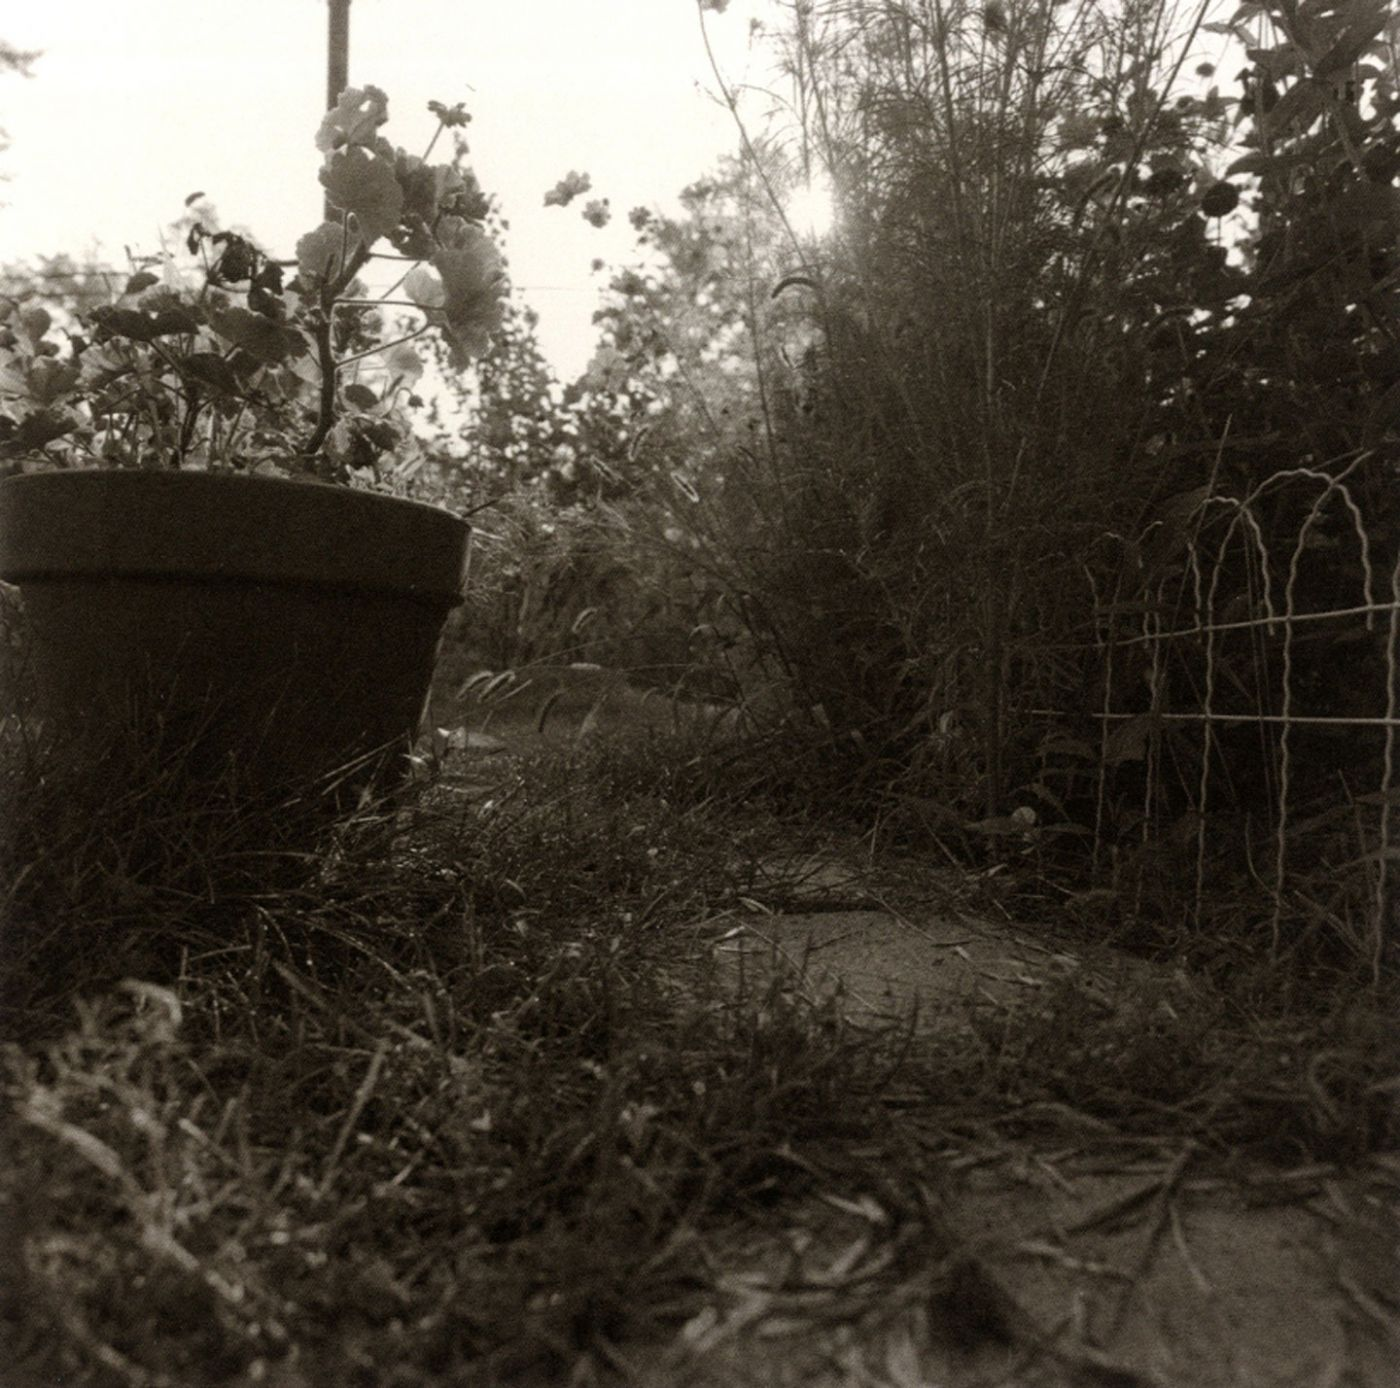 Hashtag Throwback Thursday. Here is a photograph of the backyard of 7 Dorris Avenue on the east side of Buffalo, New York. It doesn't look like much. This was the tiny patch that was my grandmother's backyard. When I was little she would pull out a wooden sandbox with a little colored canvas roof and set it there so I could climb in to play. She'd give me a bucket of water so that I could make rivers and lakes. She hung laundry on the line that blew in the breeze like ghosts. I have a photograph of my grandfather standing in that backyard. He is with my mother when she was a little girl. He died when she was five. In the photograph, I can see the laundry line pole and I can see the little wire fence. There is no sandbox. There is a little terrier I never knew. I look into the eyes of my mother as a child and see her as an adult. I look at the plants in the photograph. Scrutinize them.  One summer I hacked away the overgrowth in her backyard and came to a cluster of hyacinth. They were planted from Easter gifts from the past and all at once, below the overgrowth from the scrub trees and shrubs, there they were again. Off-handedly, she told me the date she planted them, cut some flowers and brought them inside. The wood of the sandbox rotted away. My grandmother and mother are just photographs now. The house still stands, last one nearest the corner now after a fire took the neighboring one. I like to imagine the hyacinth she planted has taken over and blooms in purples and whites. It is the fragrance of the hyacinth that brings me back to her. There she is again with the scissors cutting the stems at an angle. The heavy flower heads bending the weak stalk. There is my mother again. There is the sandbox with its river of tap water. There is the colored canvas and the sheets blowing on the line. The photograph is the silent reminder. I want to be able to hear her Polish accent in it, I want to hear her swear when she drops a wooden clothesline and takes another from her pocket. I want to hear the sound of the shovel in the sand, hear the water carve away the river. I want to see the hyacinth in the glass on the kitchen table, the room a perfume. I go back there. To the glass on the table. I stand at the sink and look out the window to the backyard, to the wire fence, to that summer's overgrowth and everything I carry within.